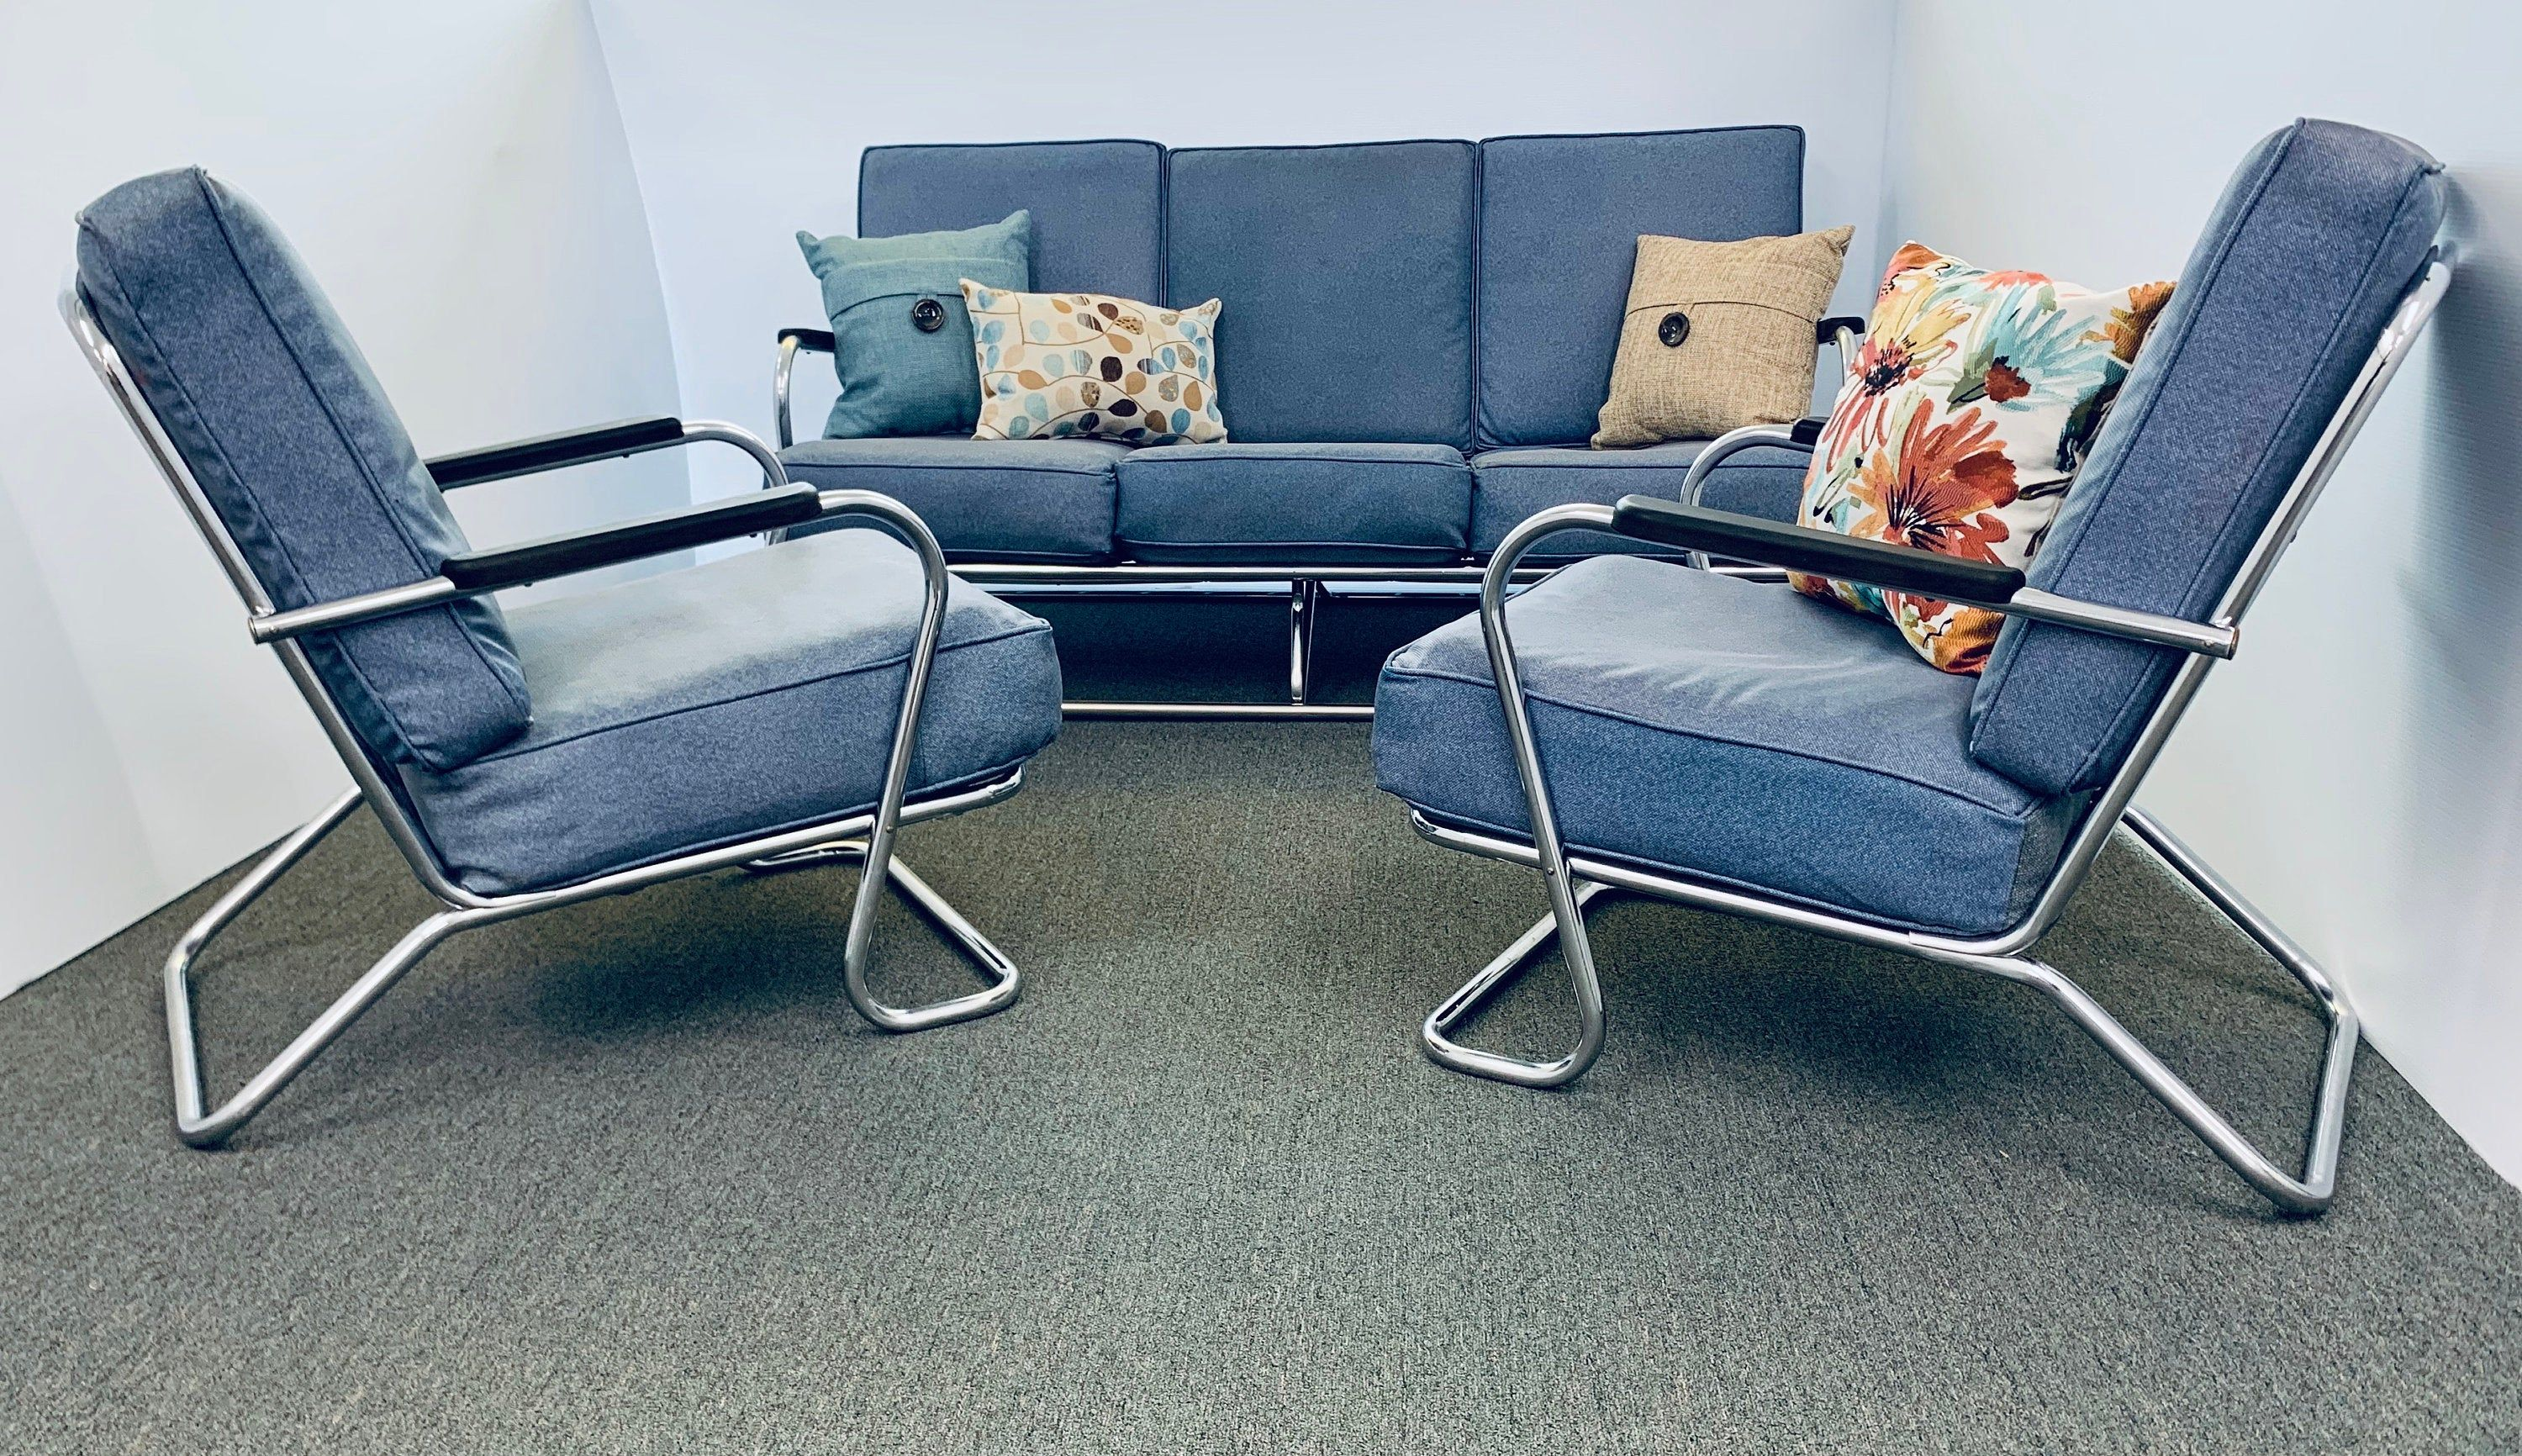 Antique Mid Century Lloyd Tubular Couch And 2 Chairs Set Deco Chrome Rare Couch Shopping Mcm Living Room Vintage Cushions #set #of #2 #chairs #for #living #room